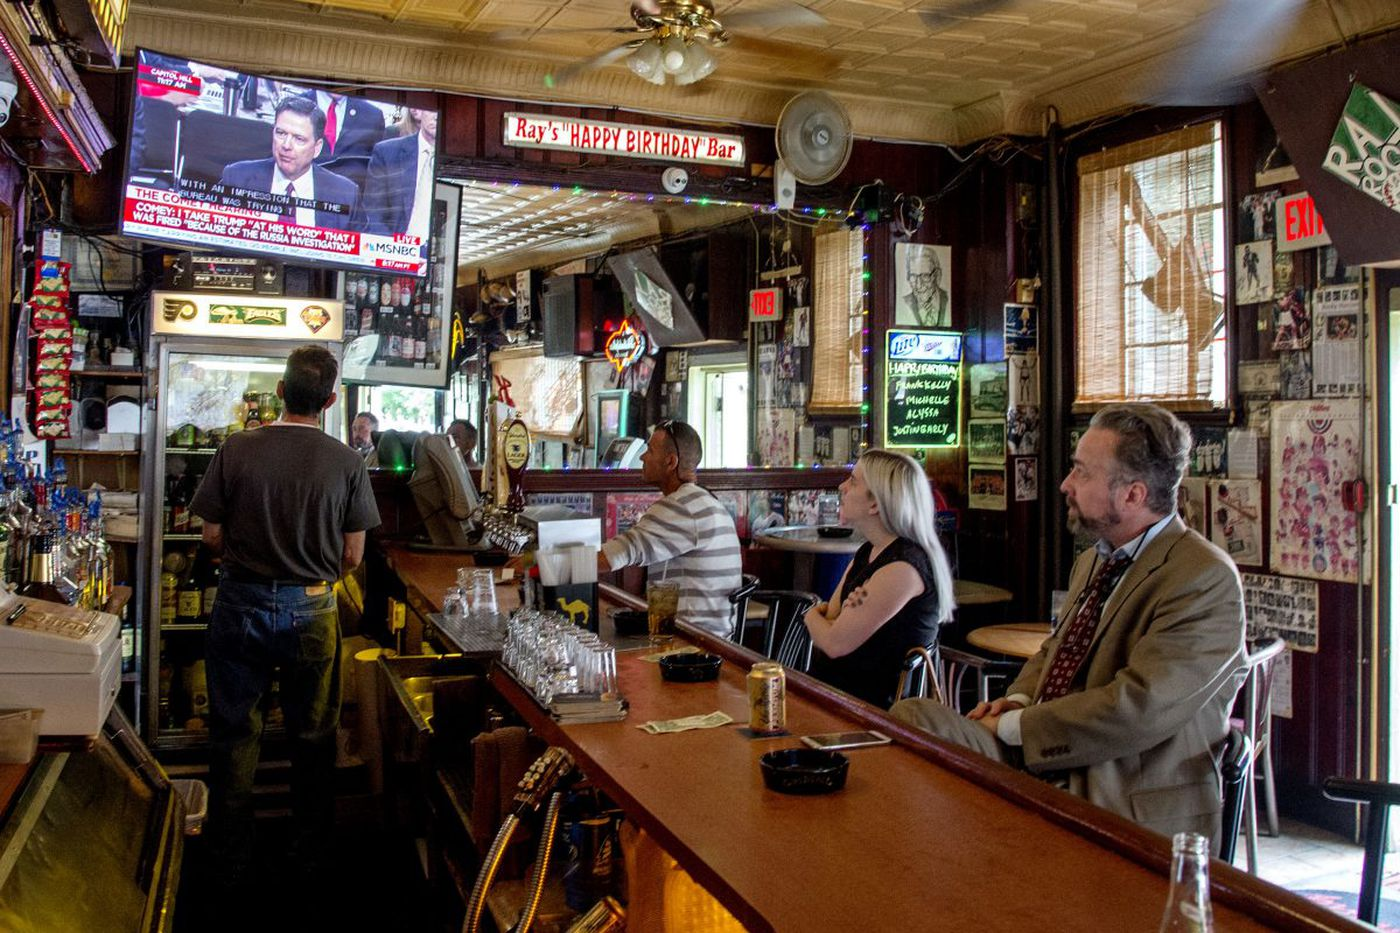 Pub patrons watching Comey tried to swallow what's at stake